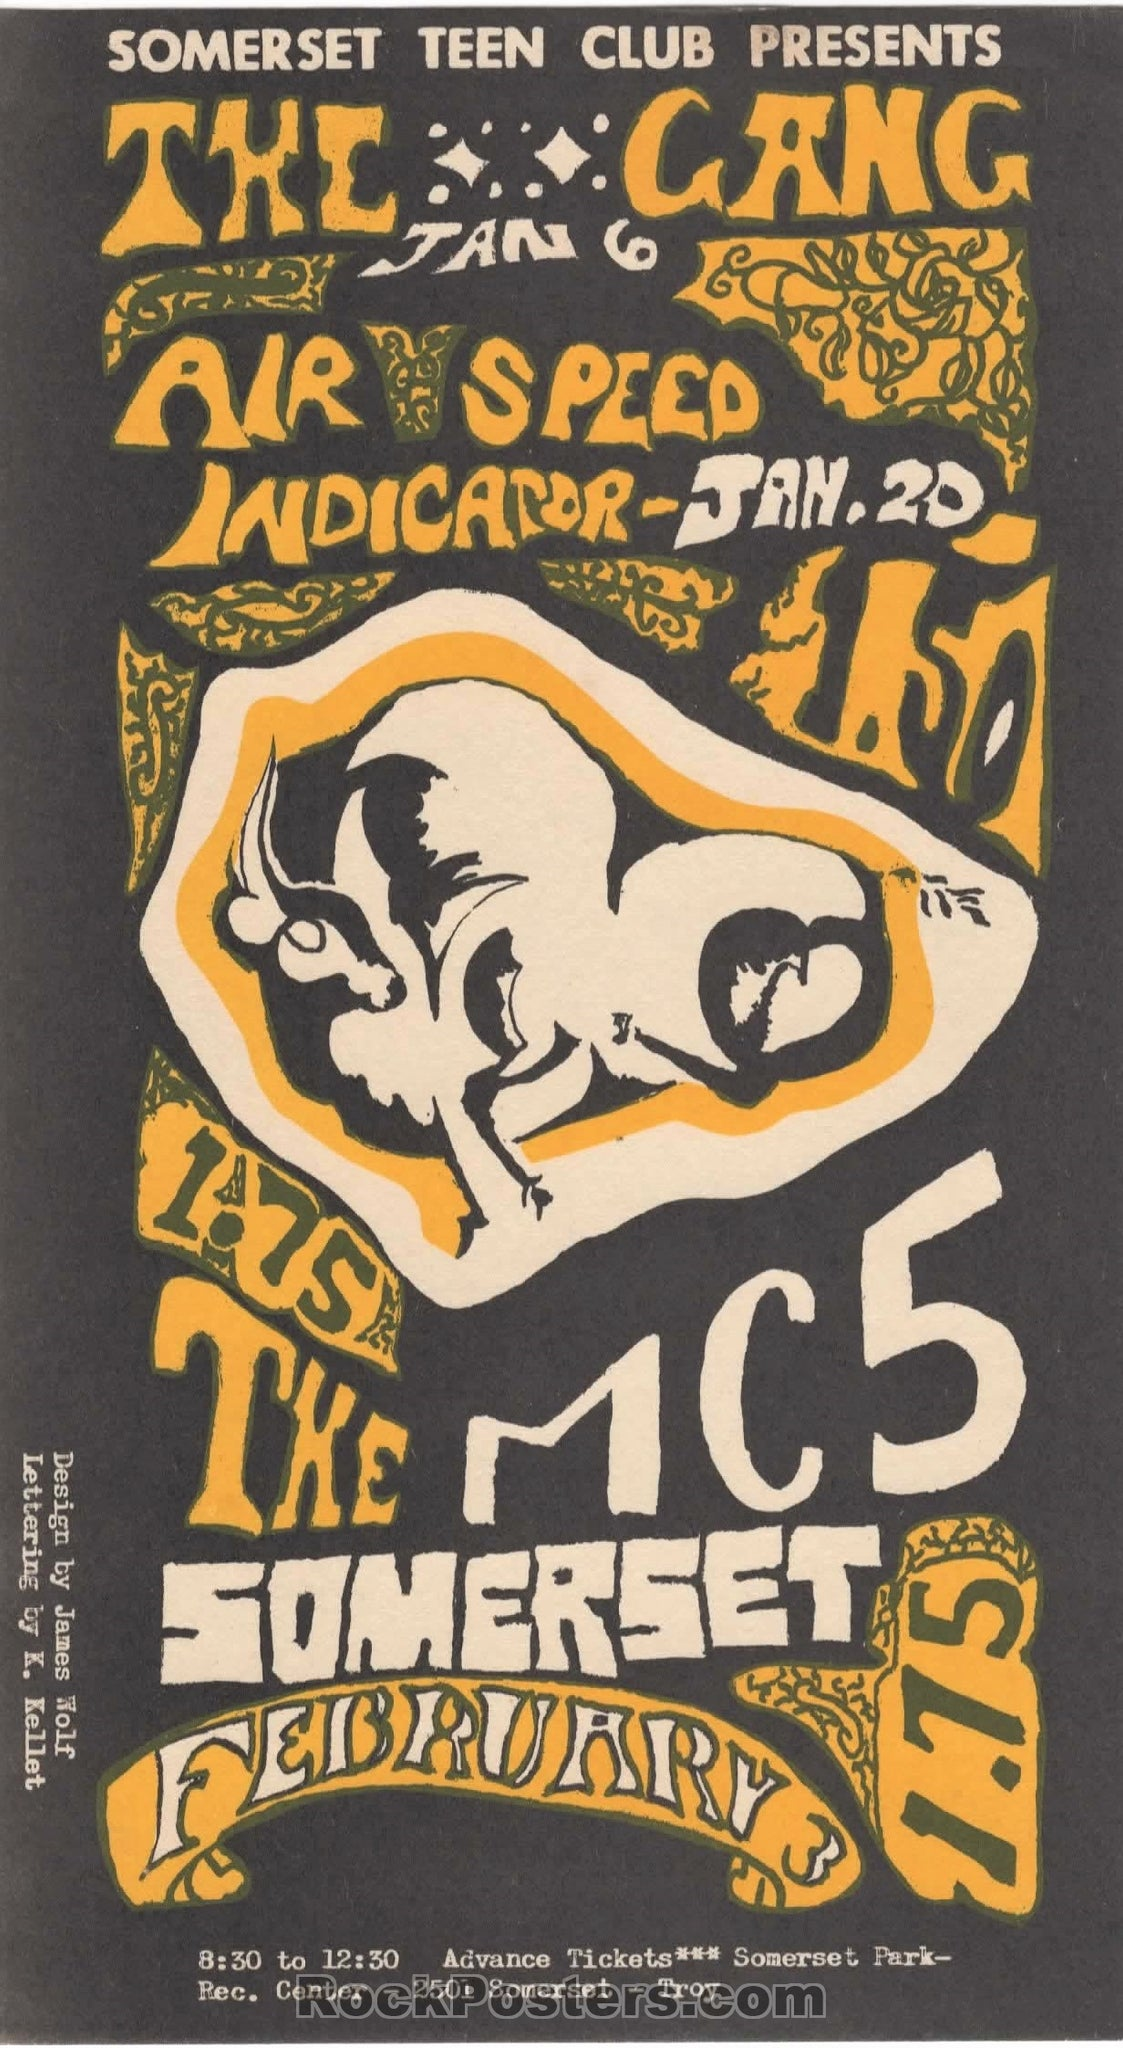 AUCTION - MC5 - 1968 Michigan Handbill - Condition - Near Mint Minus